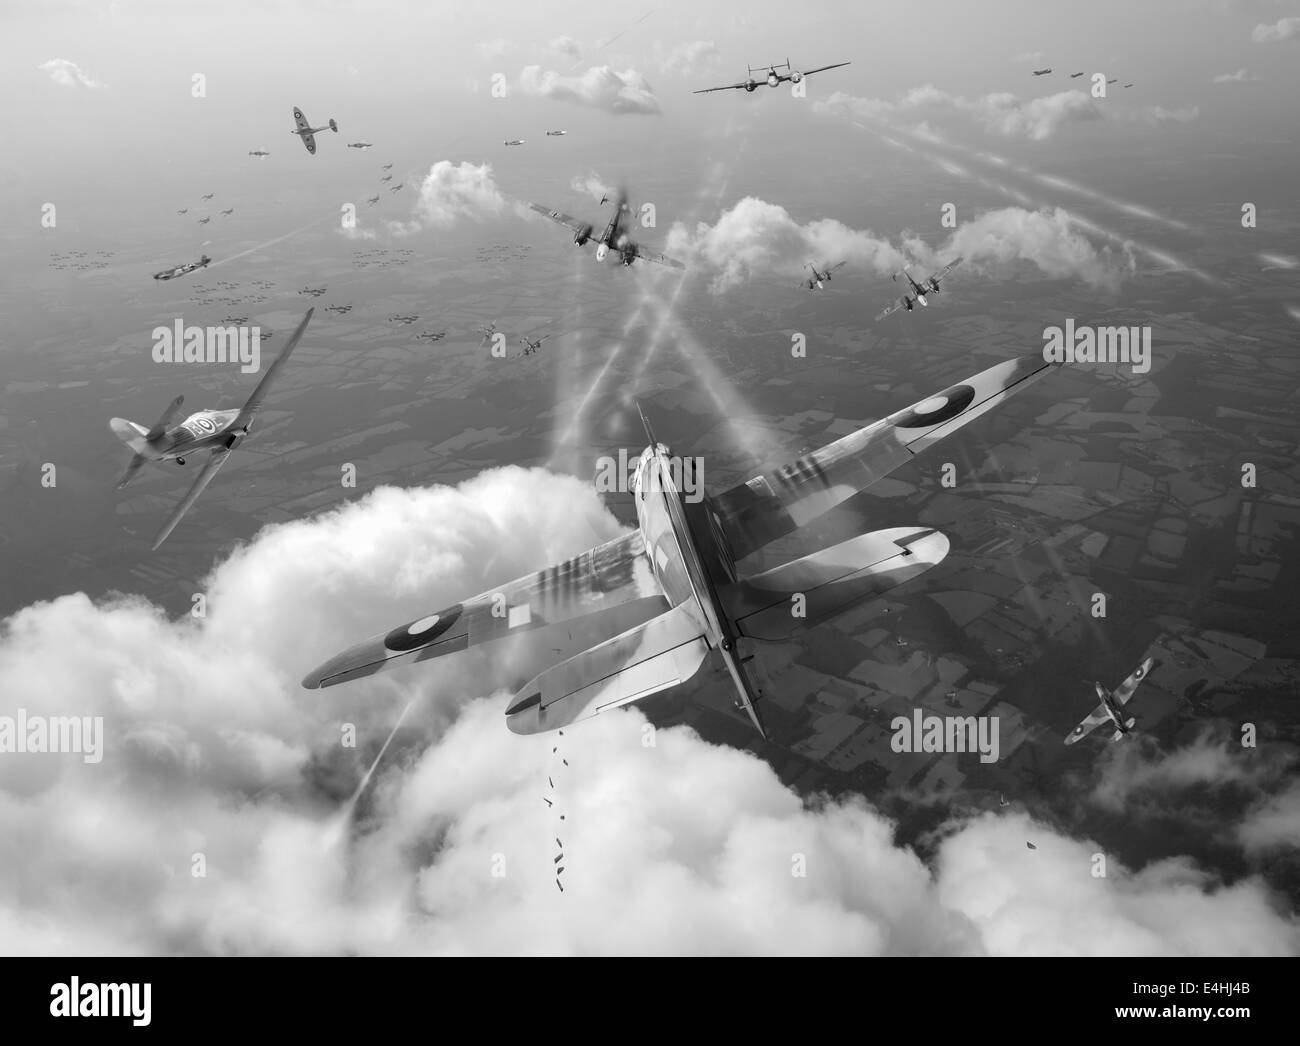 RAF Hawker Hurricanes making a head-on attack against German Luftwaffe Messerschmitt Bf 110s in the Battle of Britain, - Stock Image